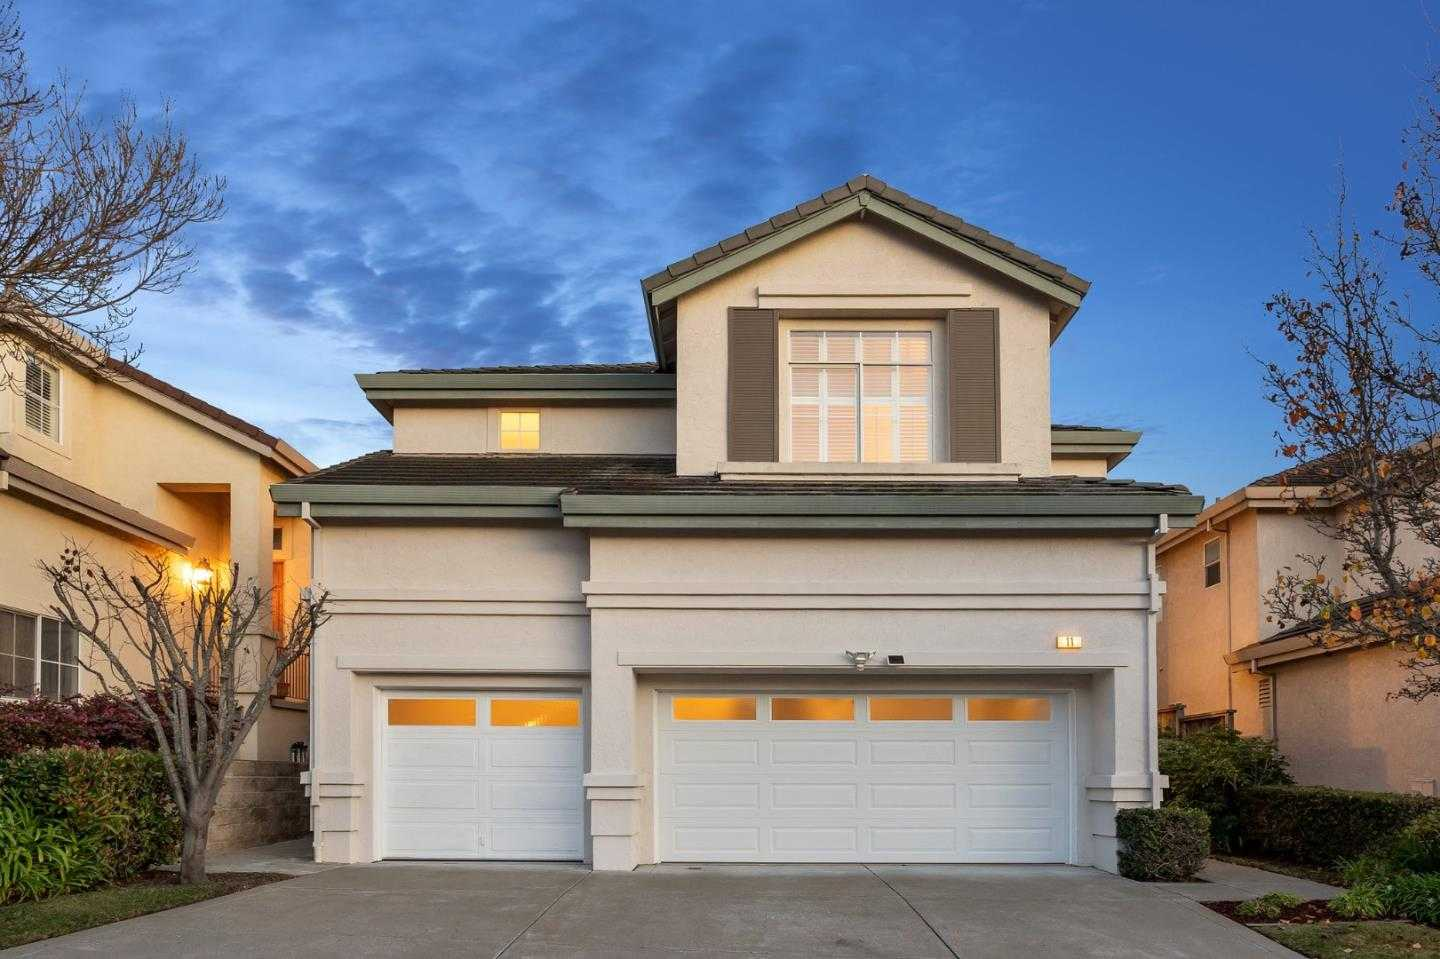 $1,590,000 - 6Br/3Ba -  for Sale in South San Francisco